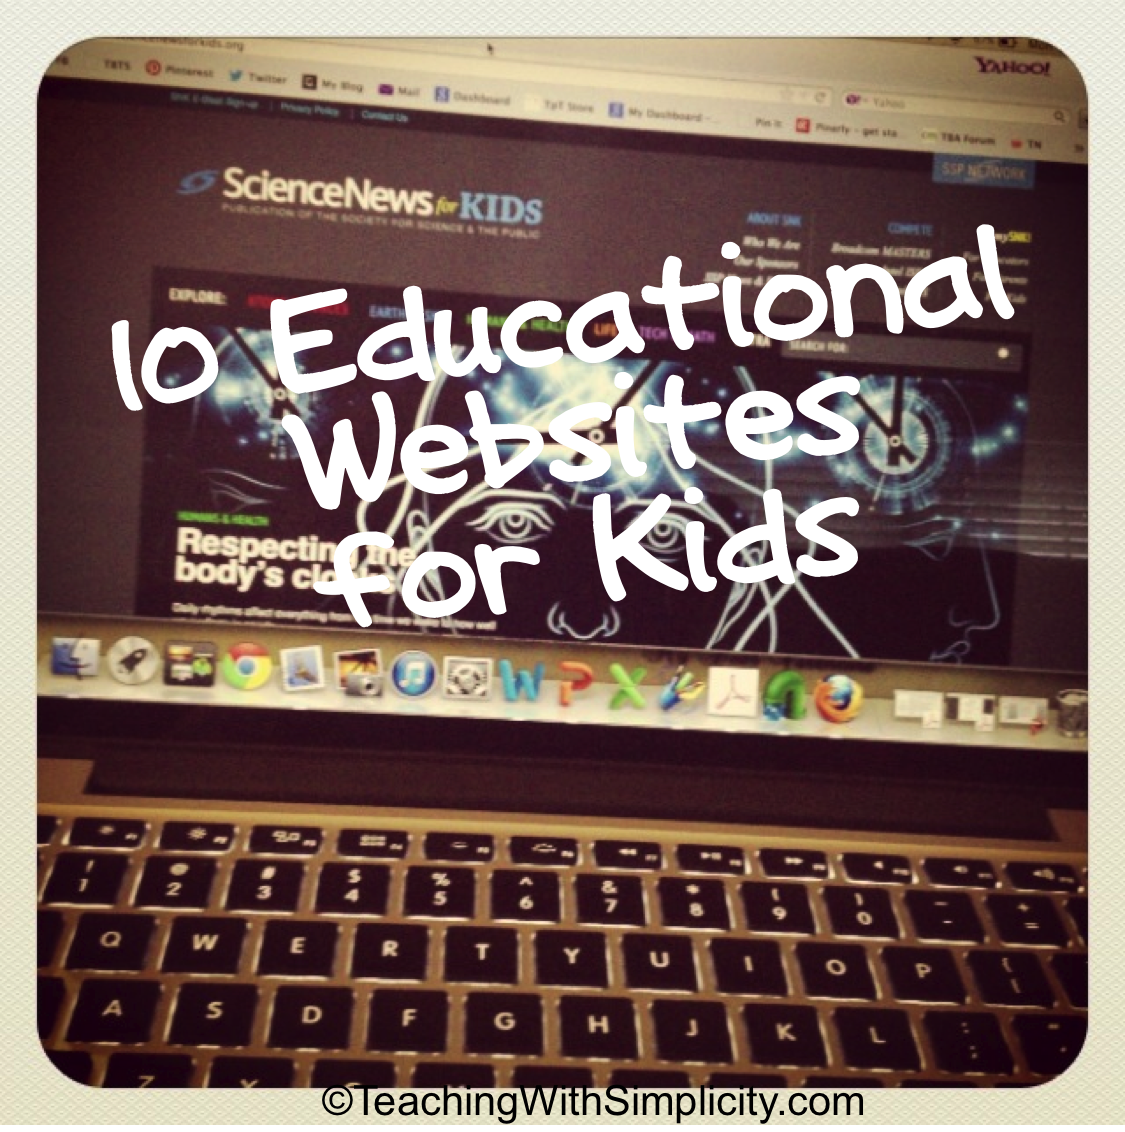 10 Educational Websites for Kids